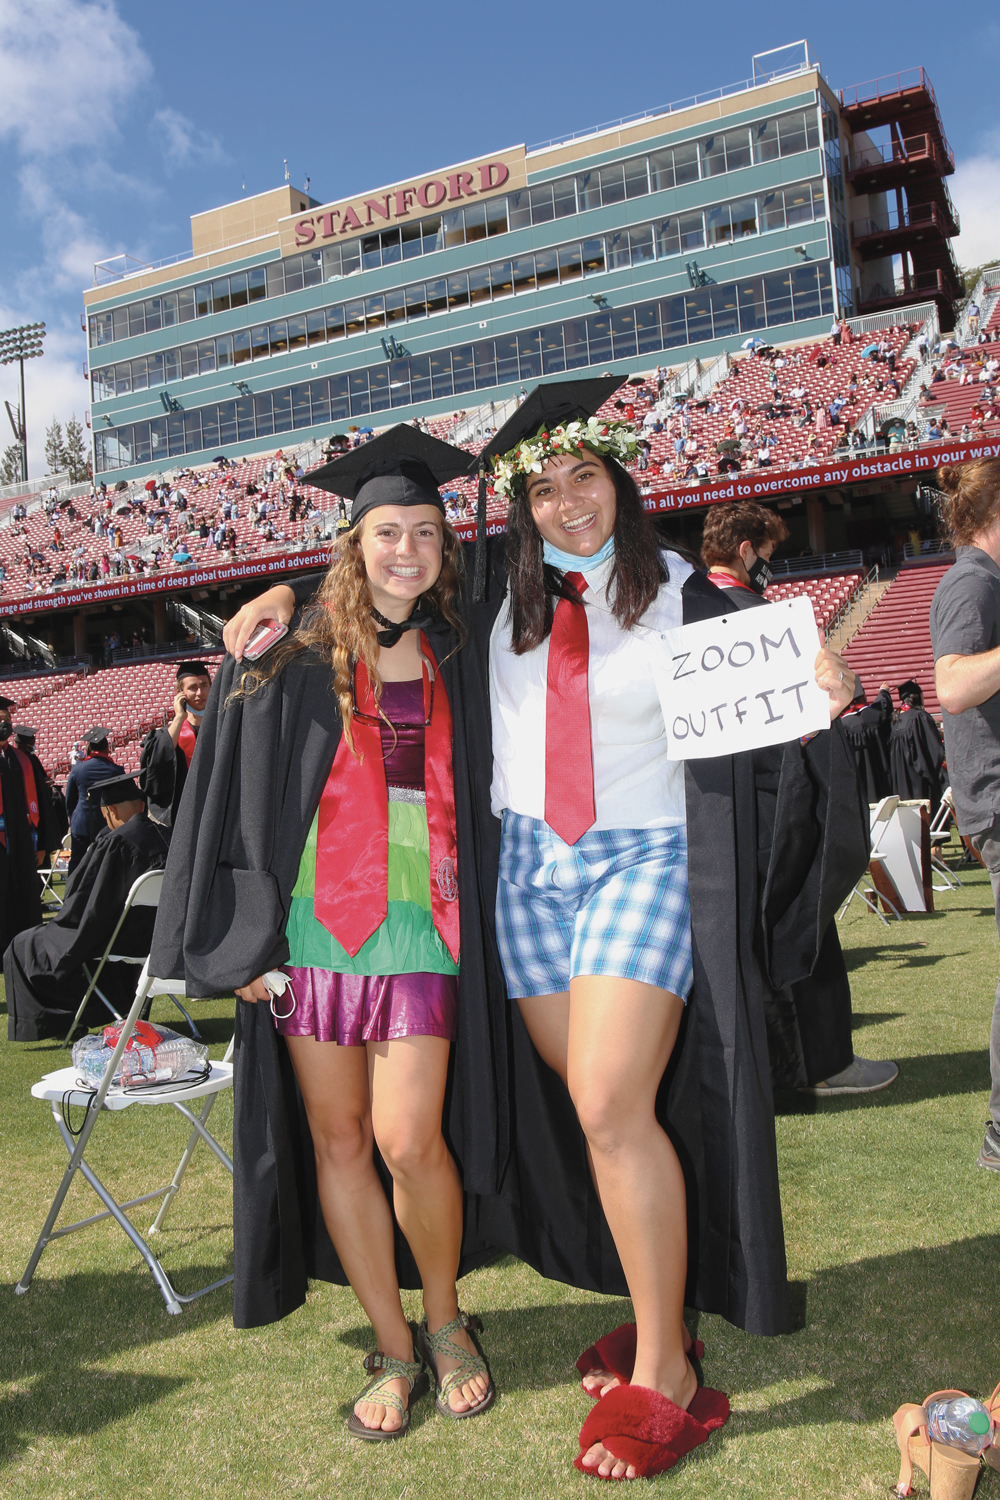 """Two female graduates with gowns open, revealing shirts and ties on top, and casual shorts on the bottom; one is holding a sign that says """"Zoom outfit."""""""